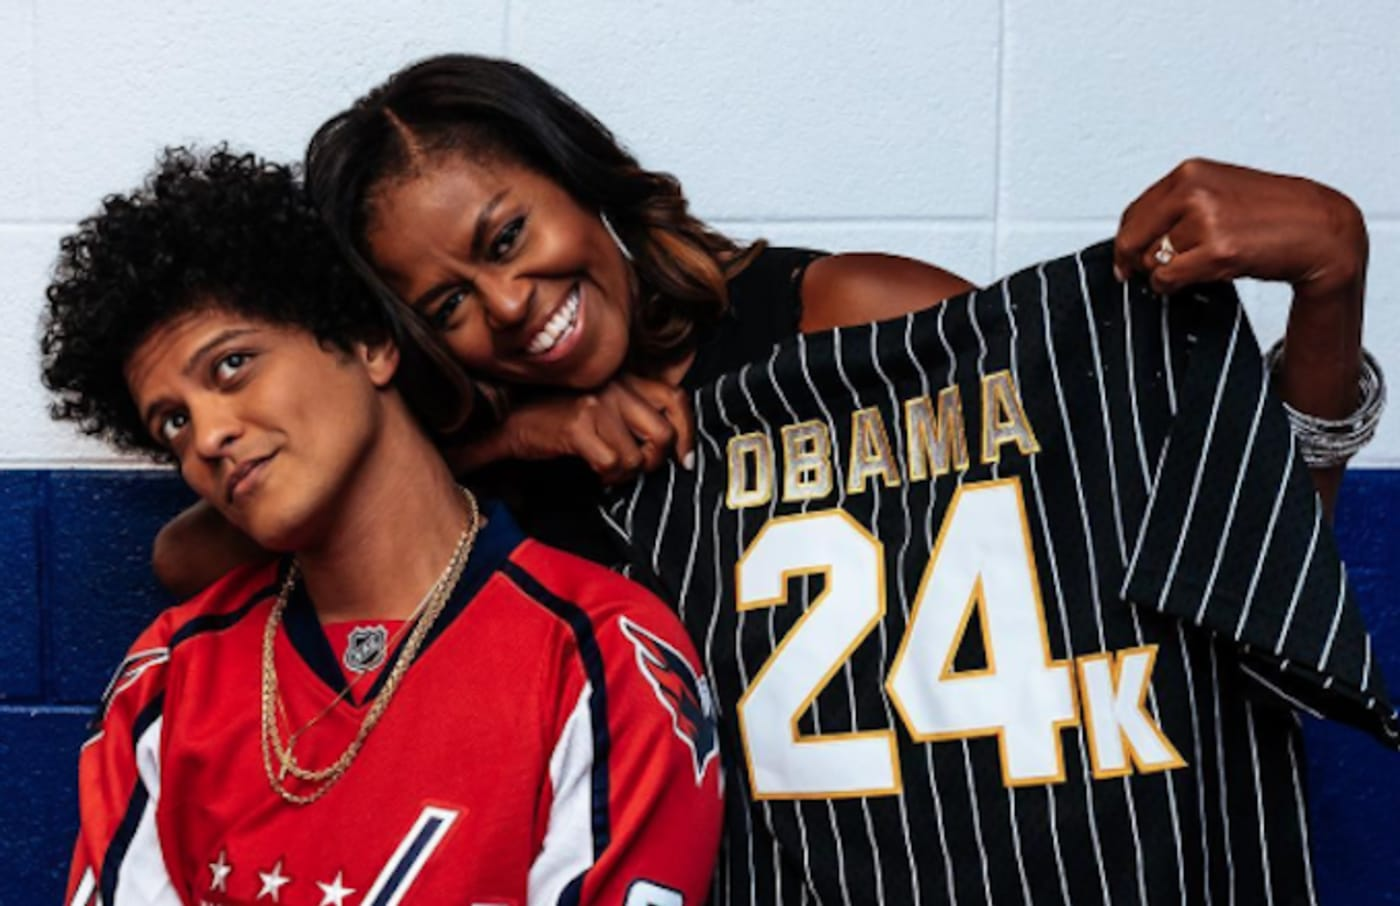 Michelle Obama poses for photo with Bruno Mars.